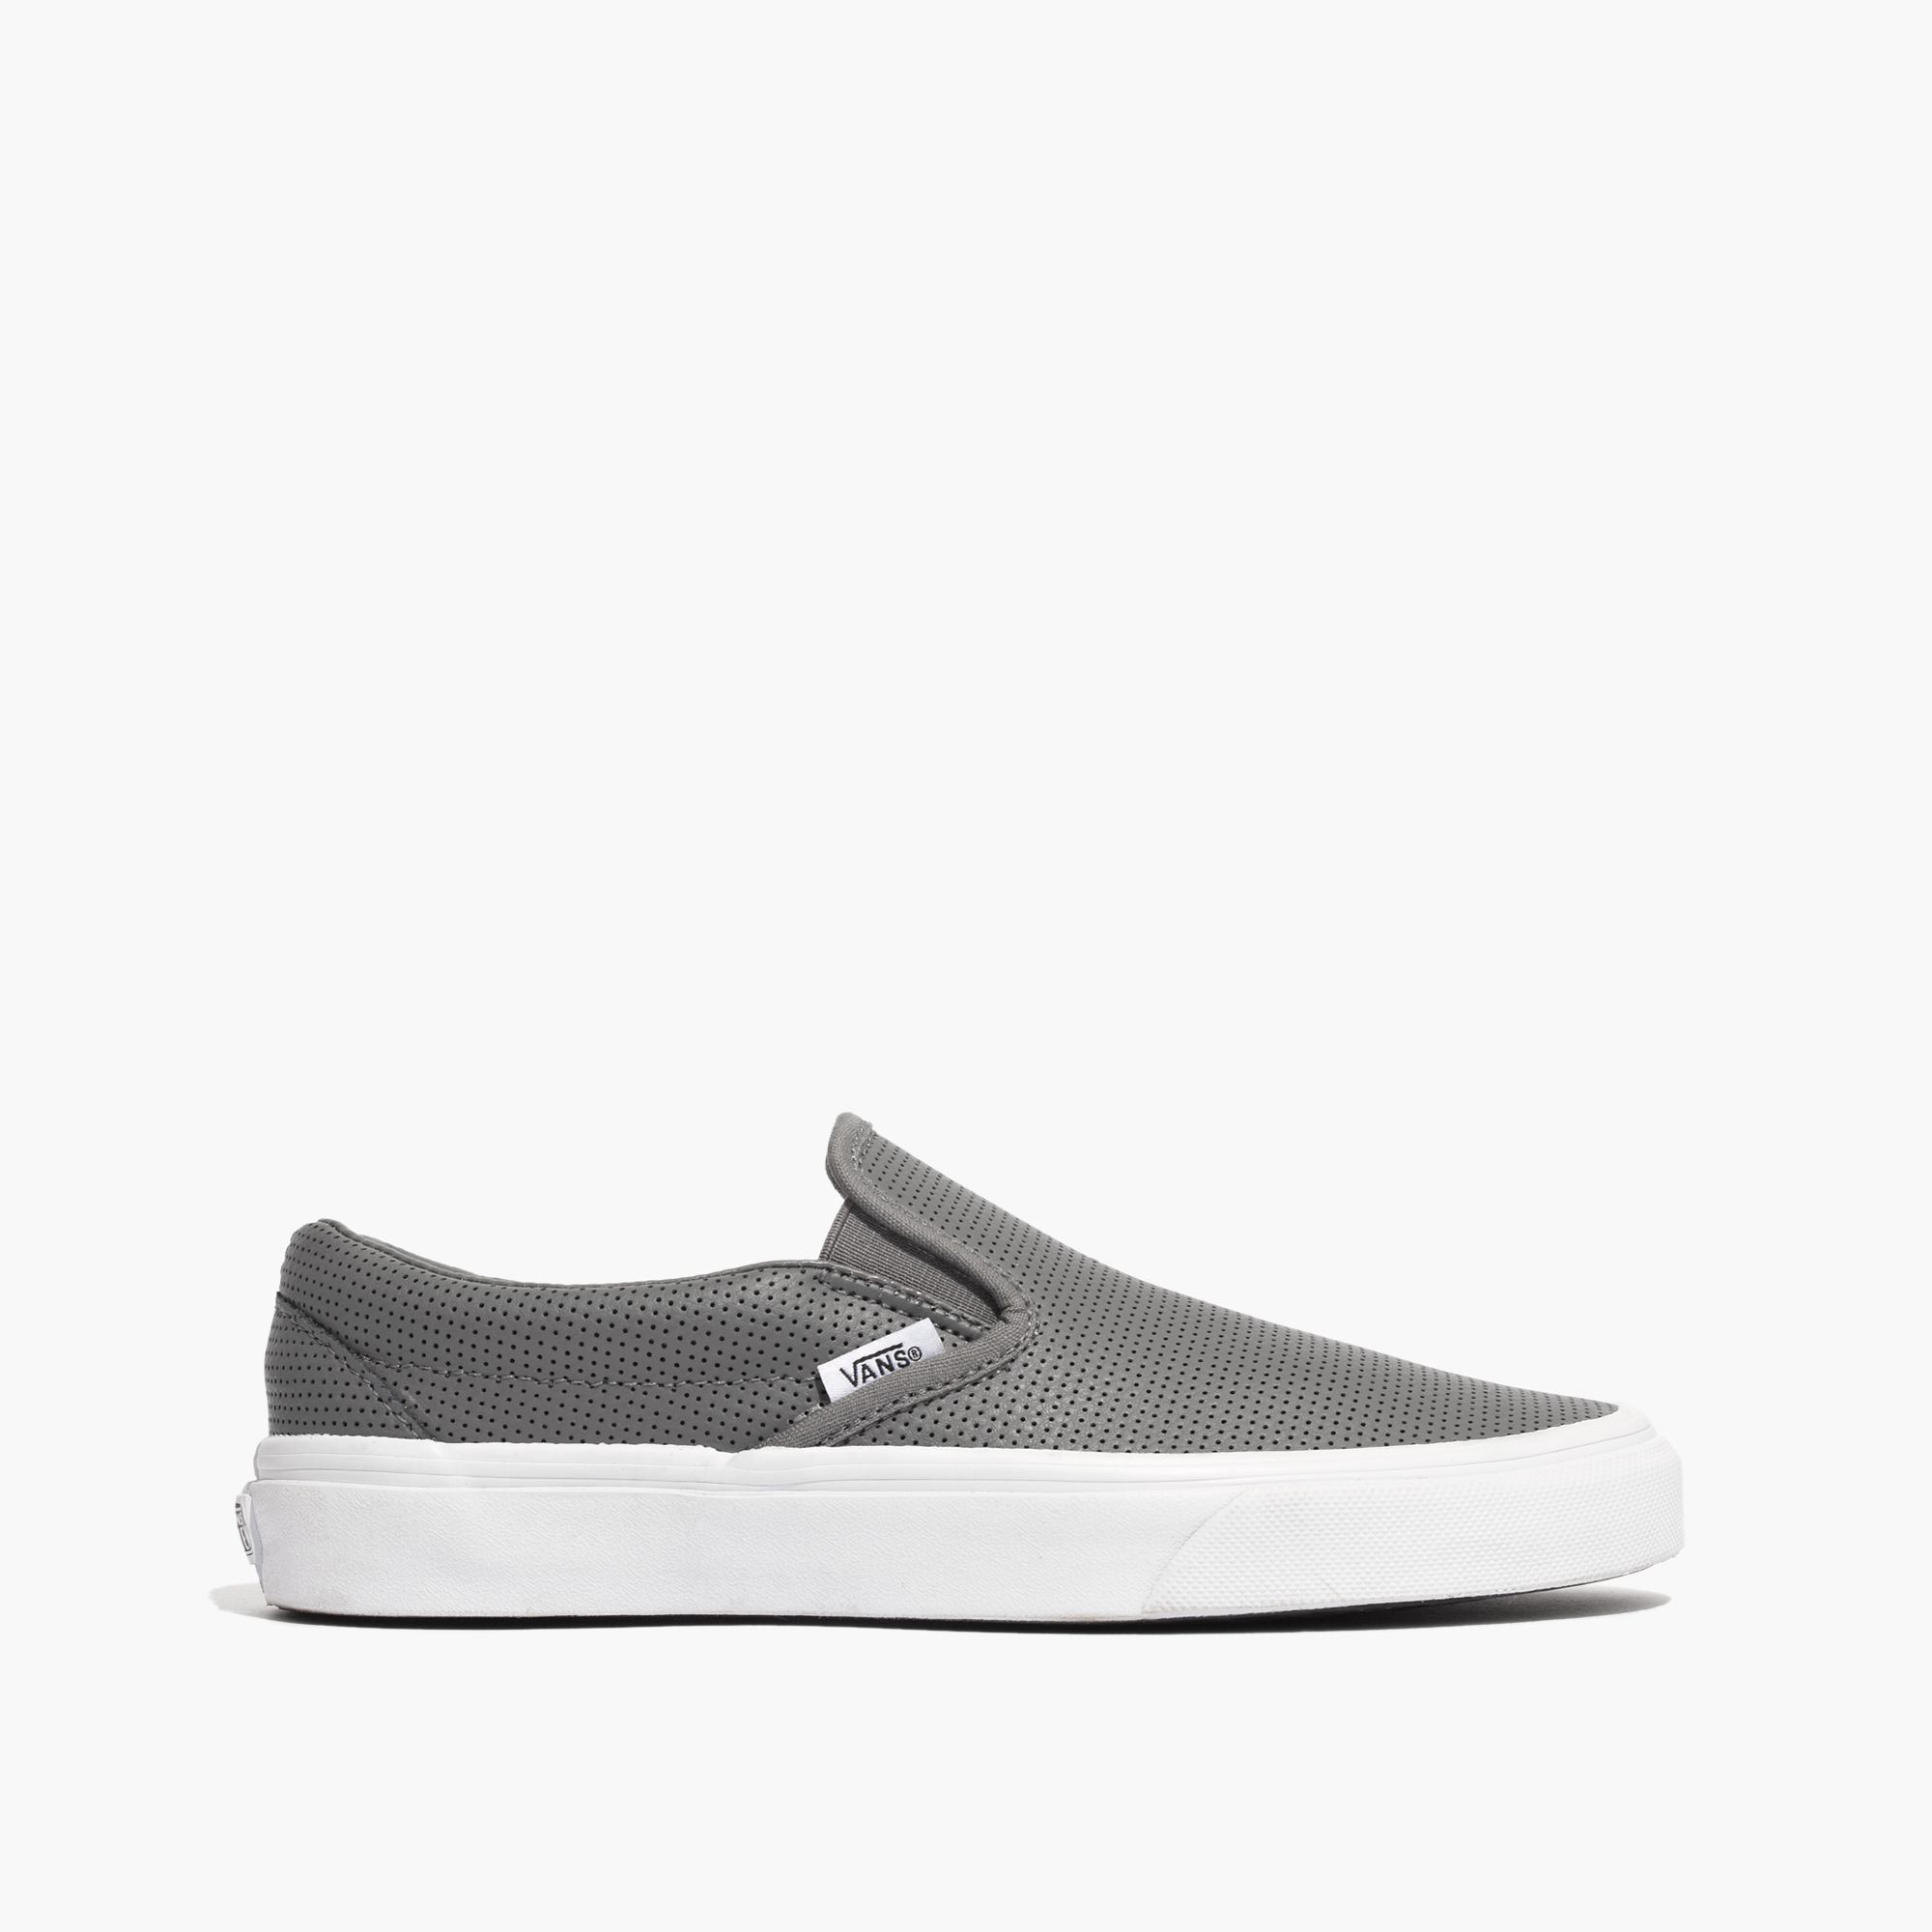 55000fcda06 Lyst - Madewell Vans® Classic Slip-on Sneakers In Grey Perforated ...